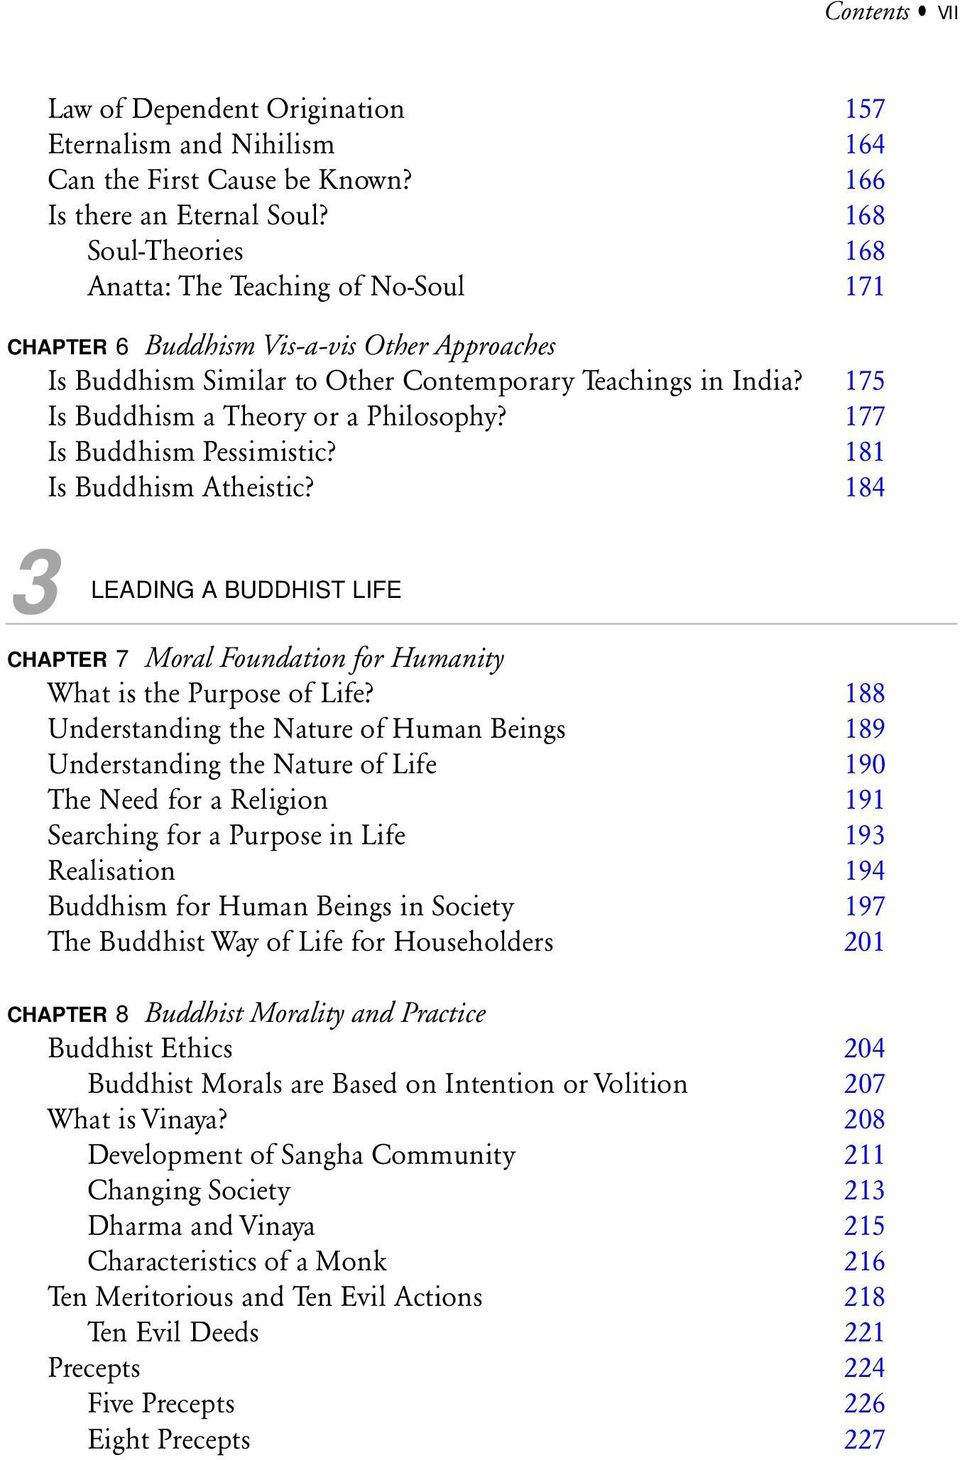 175 Is Buddhism a Theory or a Philosophy? 177 Is Buddhism Pessimistic? 181 Is Buddhism Atheistic? 184 3 LEADING A BUDDHIST LIFE CHAPTER 7 Moral Foundation for Humanity What is the Purpose of Life?